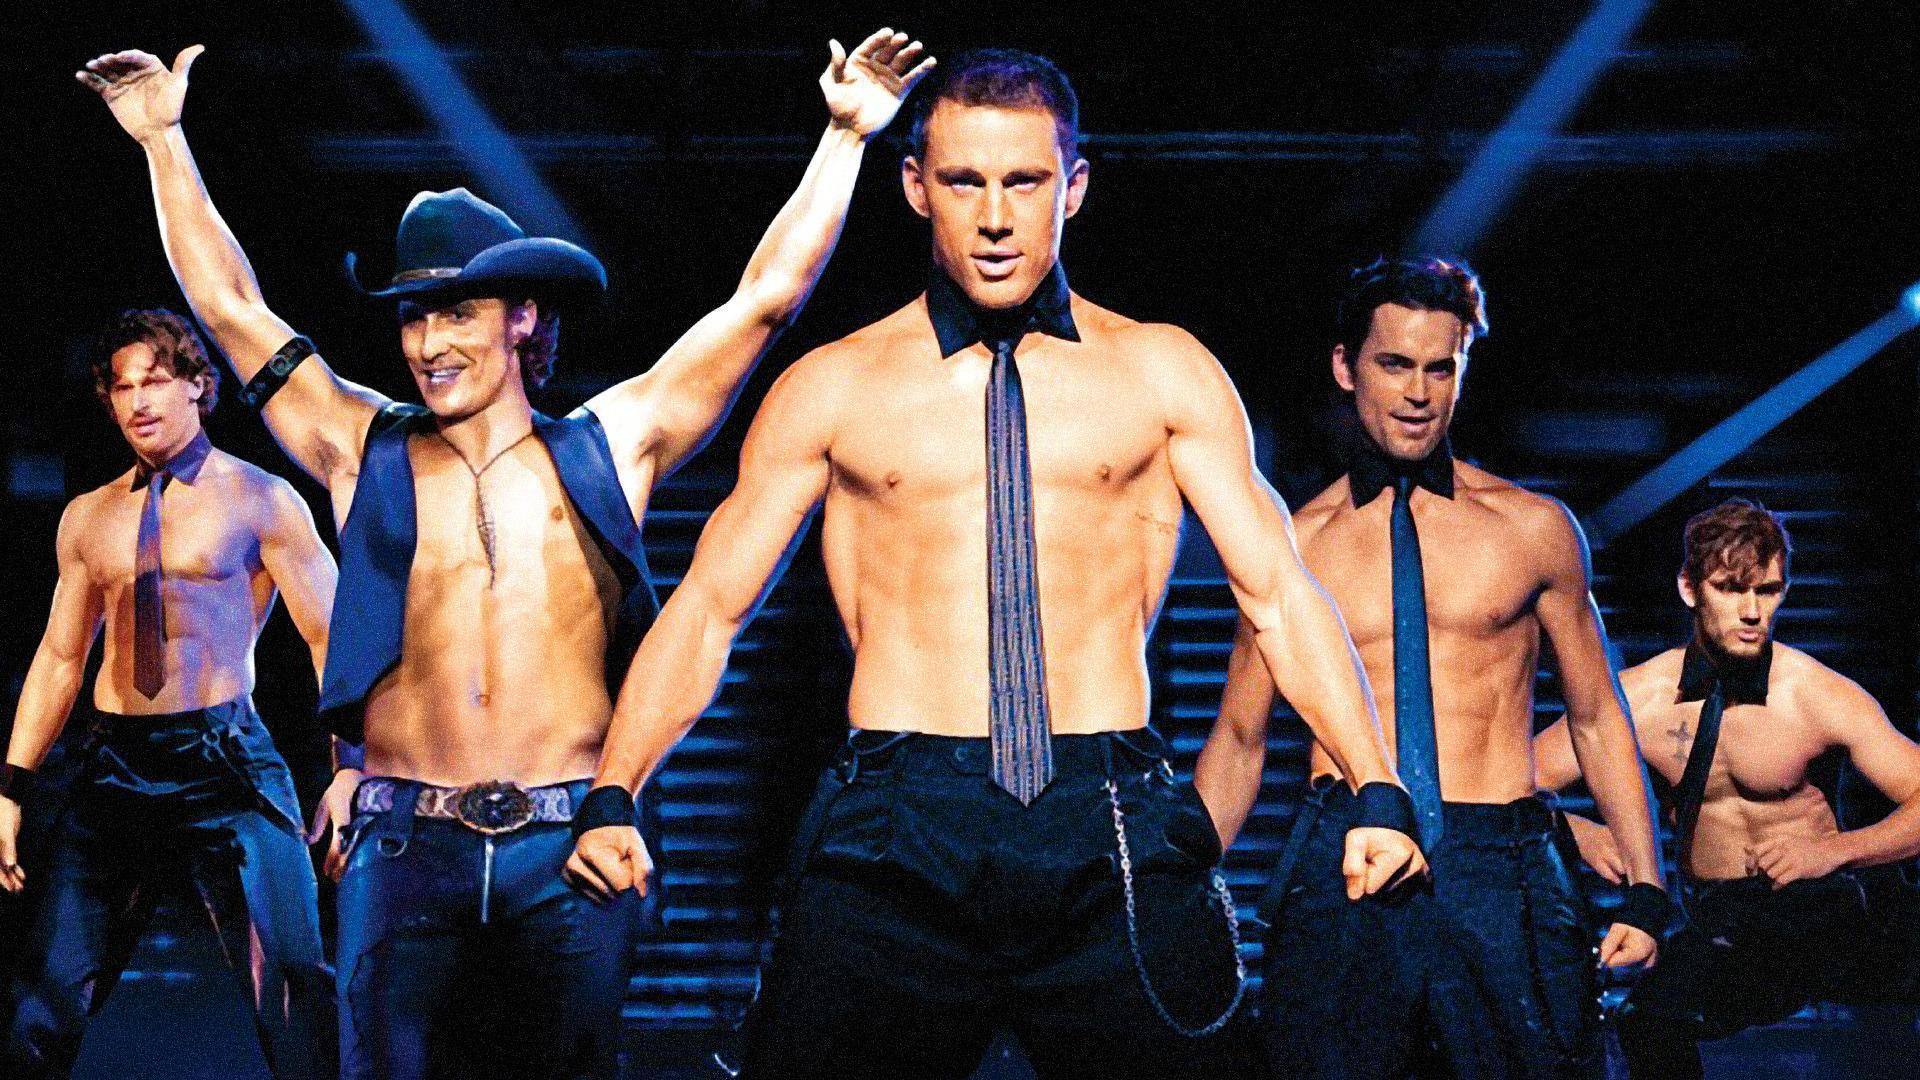 Magic Mike Live tickets on sale NOW! Cast, dates and venue for the Channing Tatum show